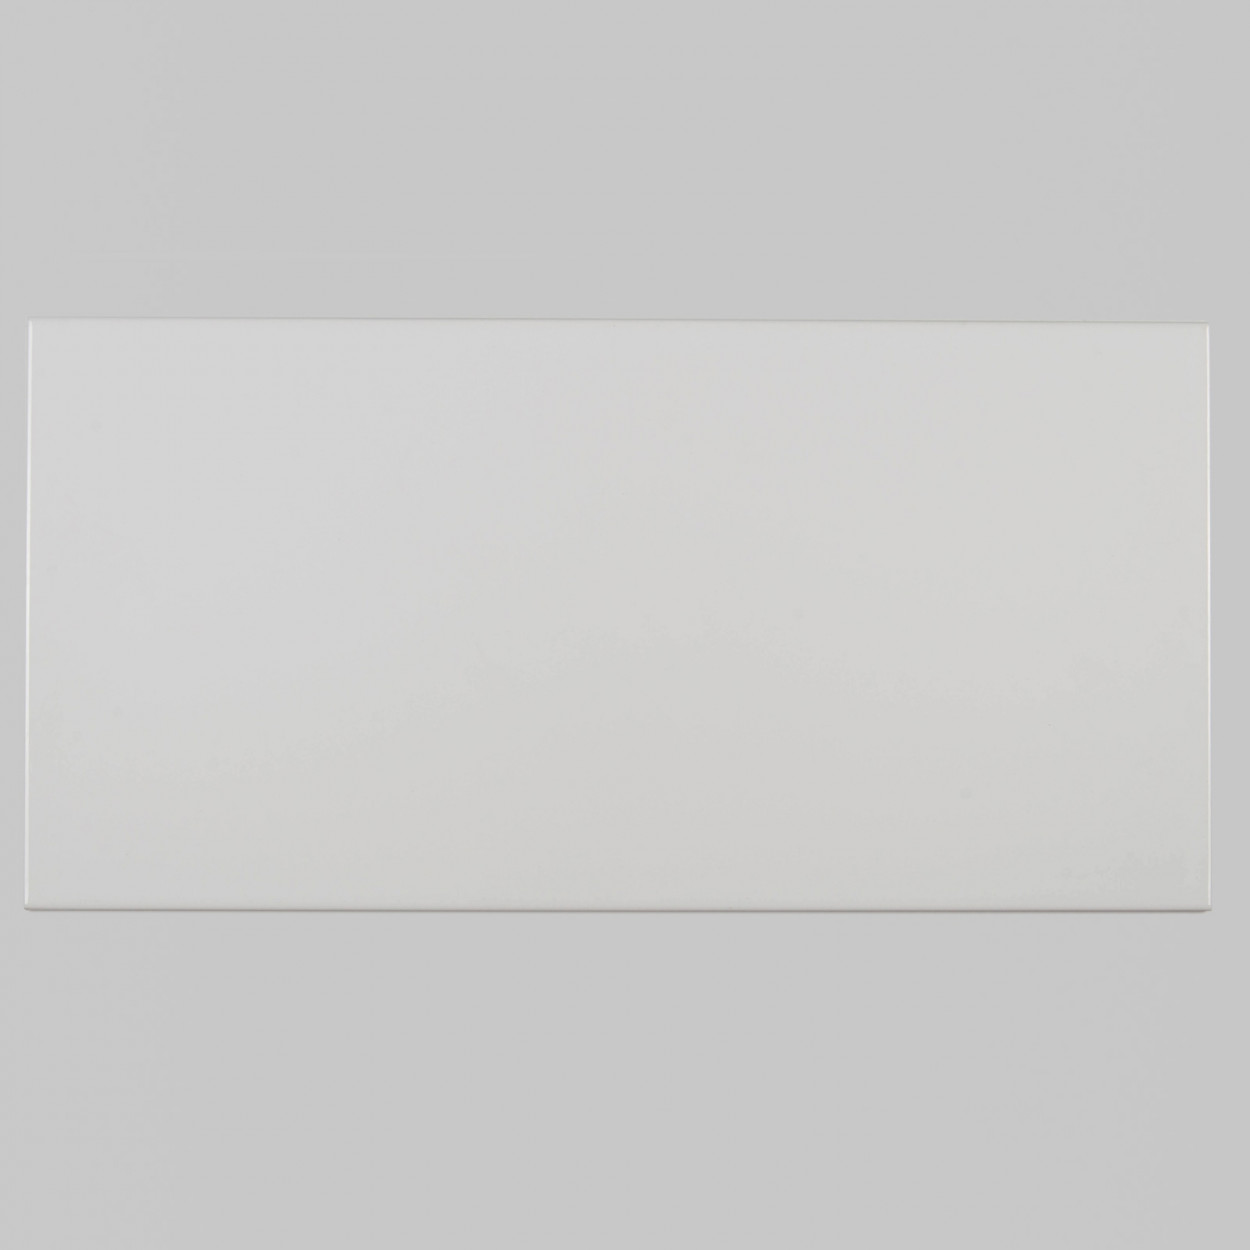 carrelage mural pro blanc emaille rectifie 30 x 60 cm